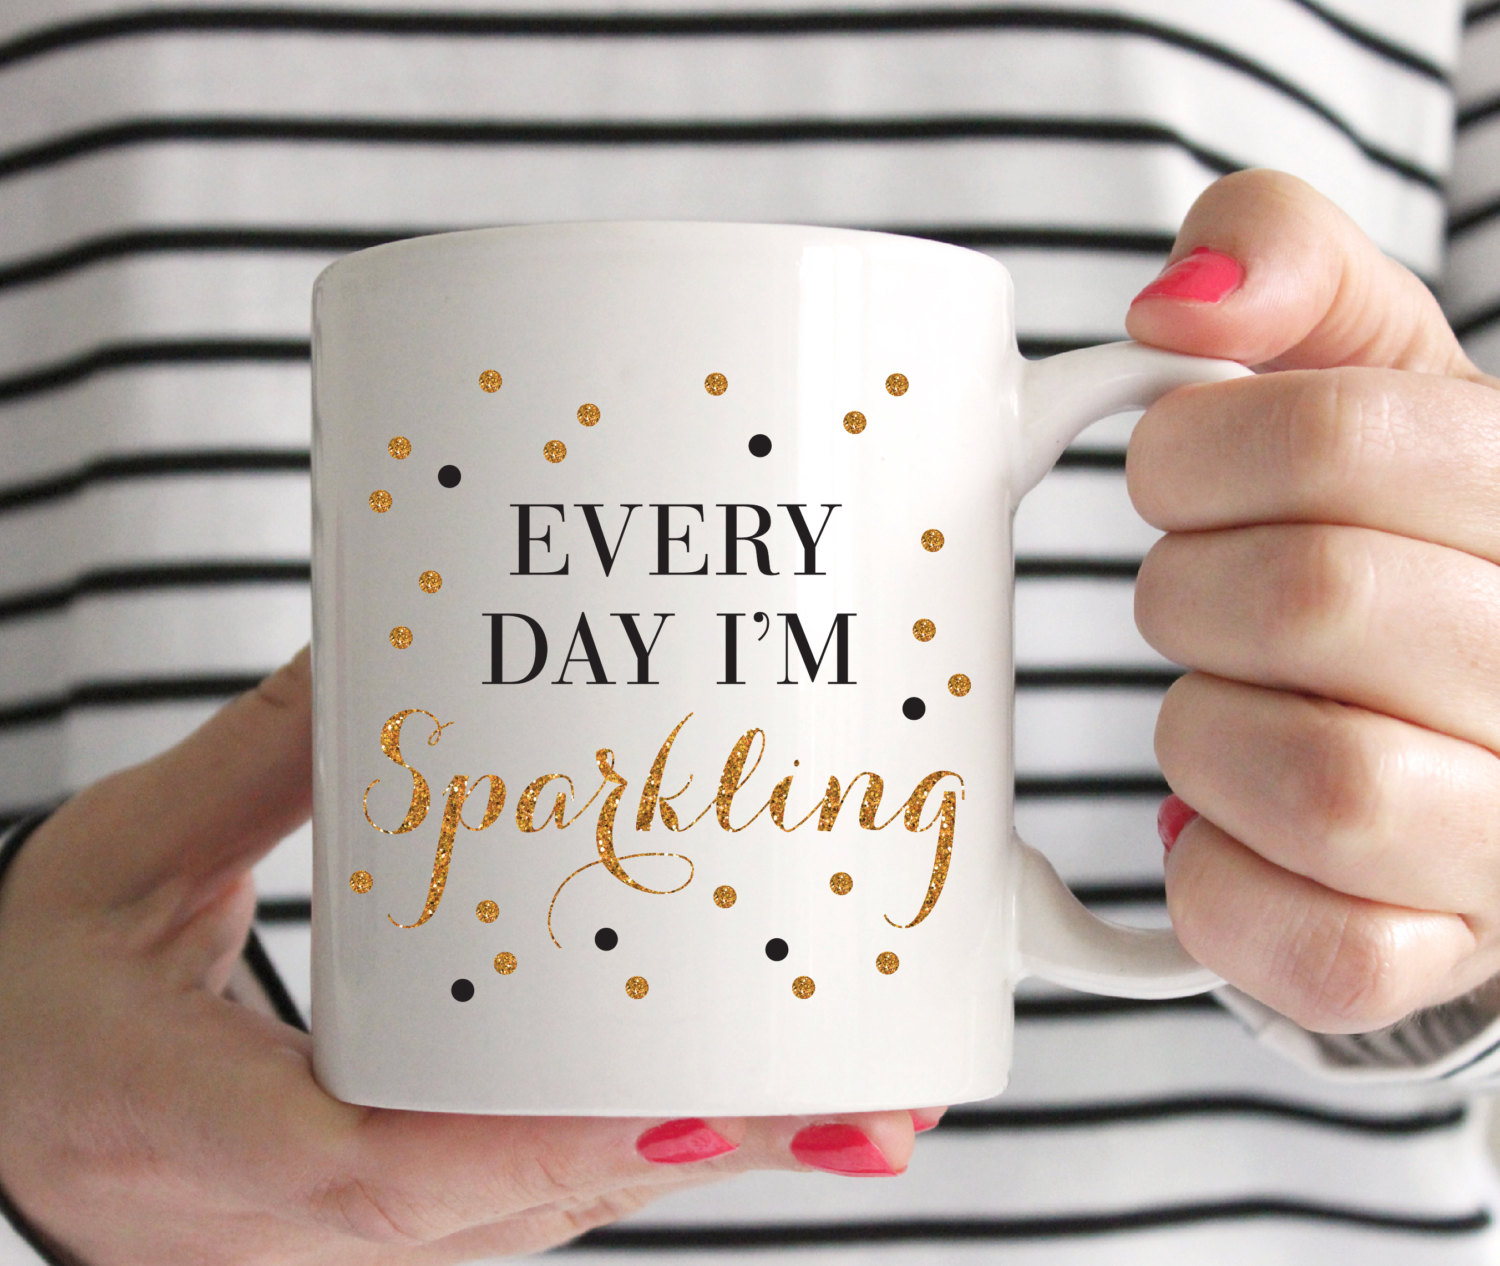 Coffee mugs with signs